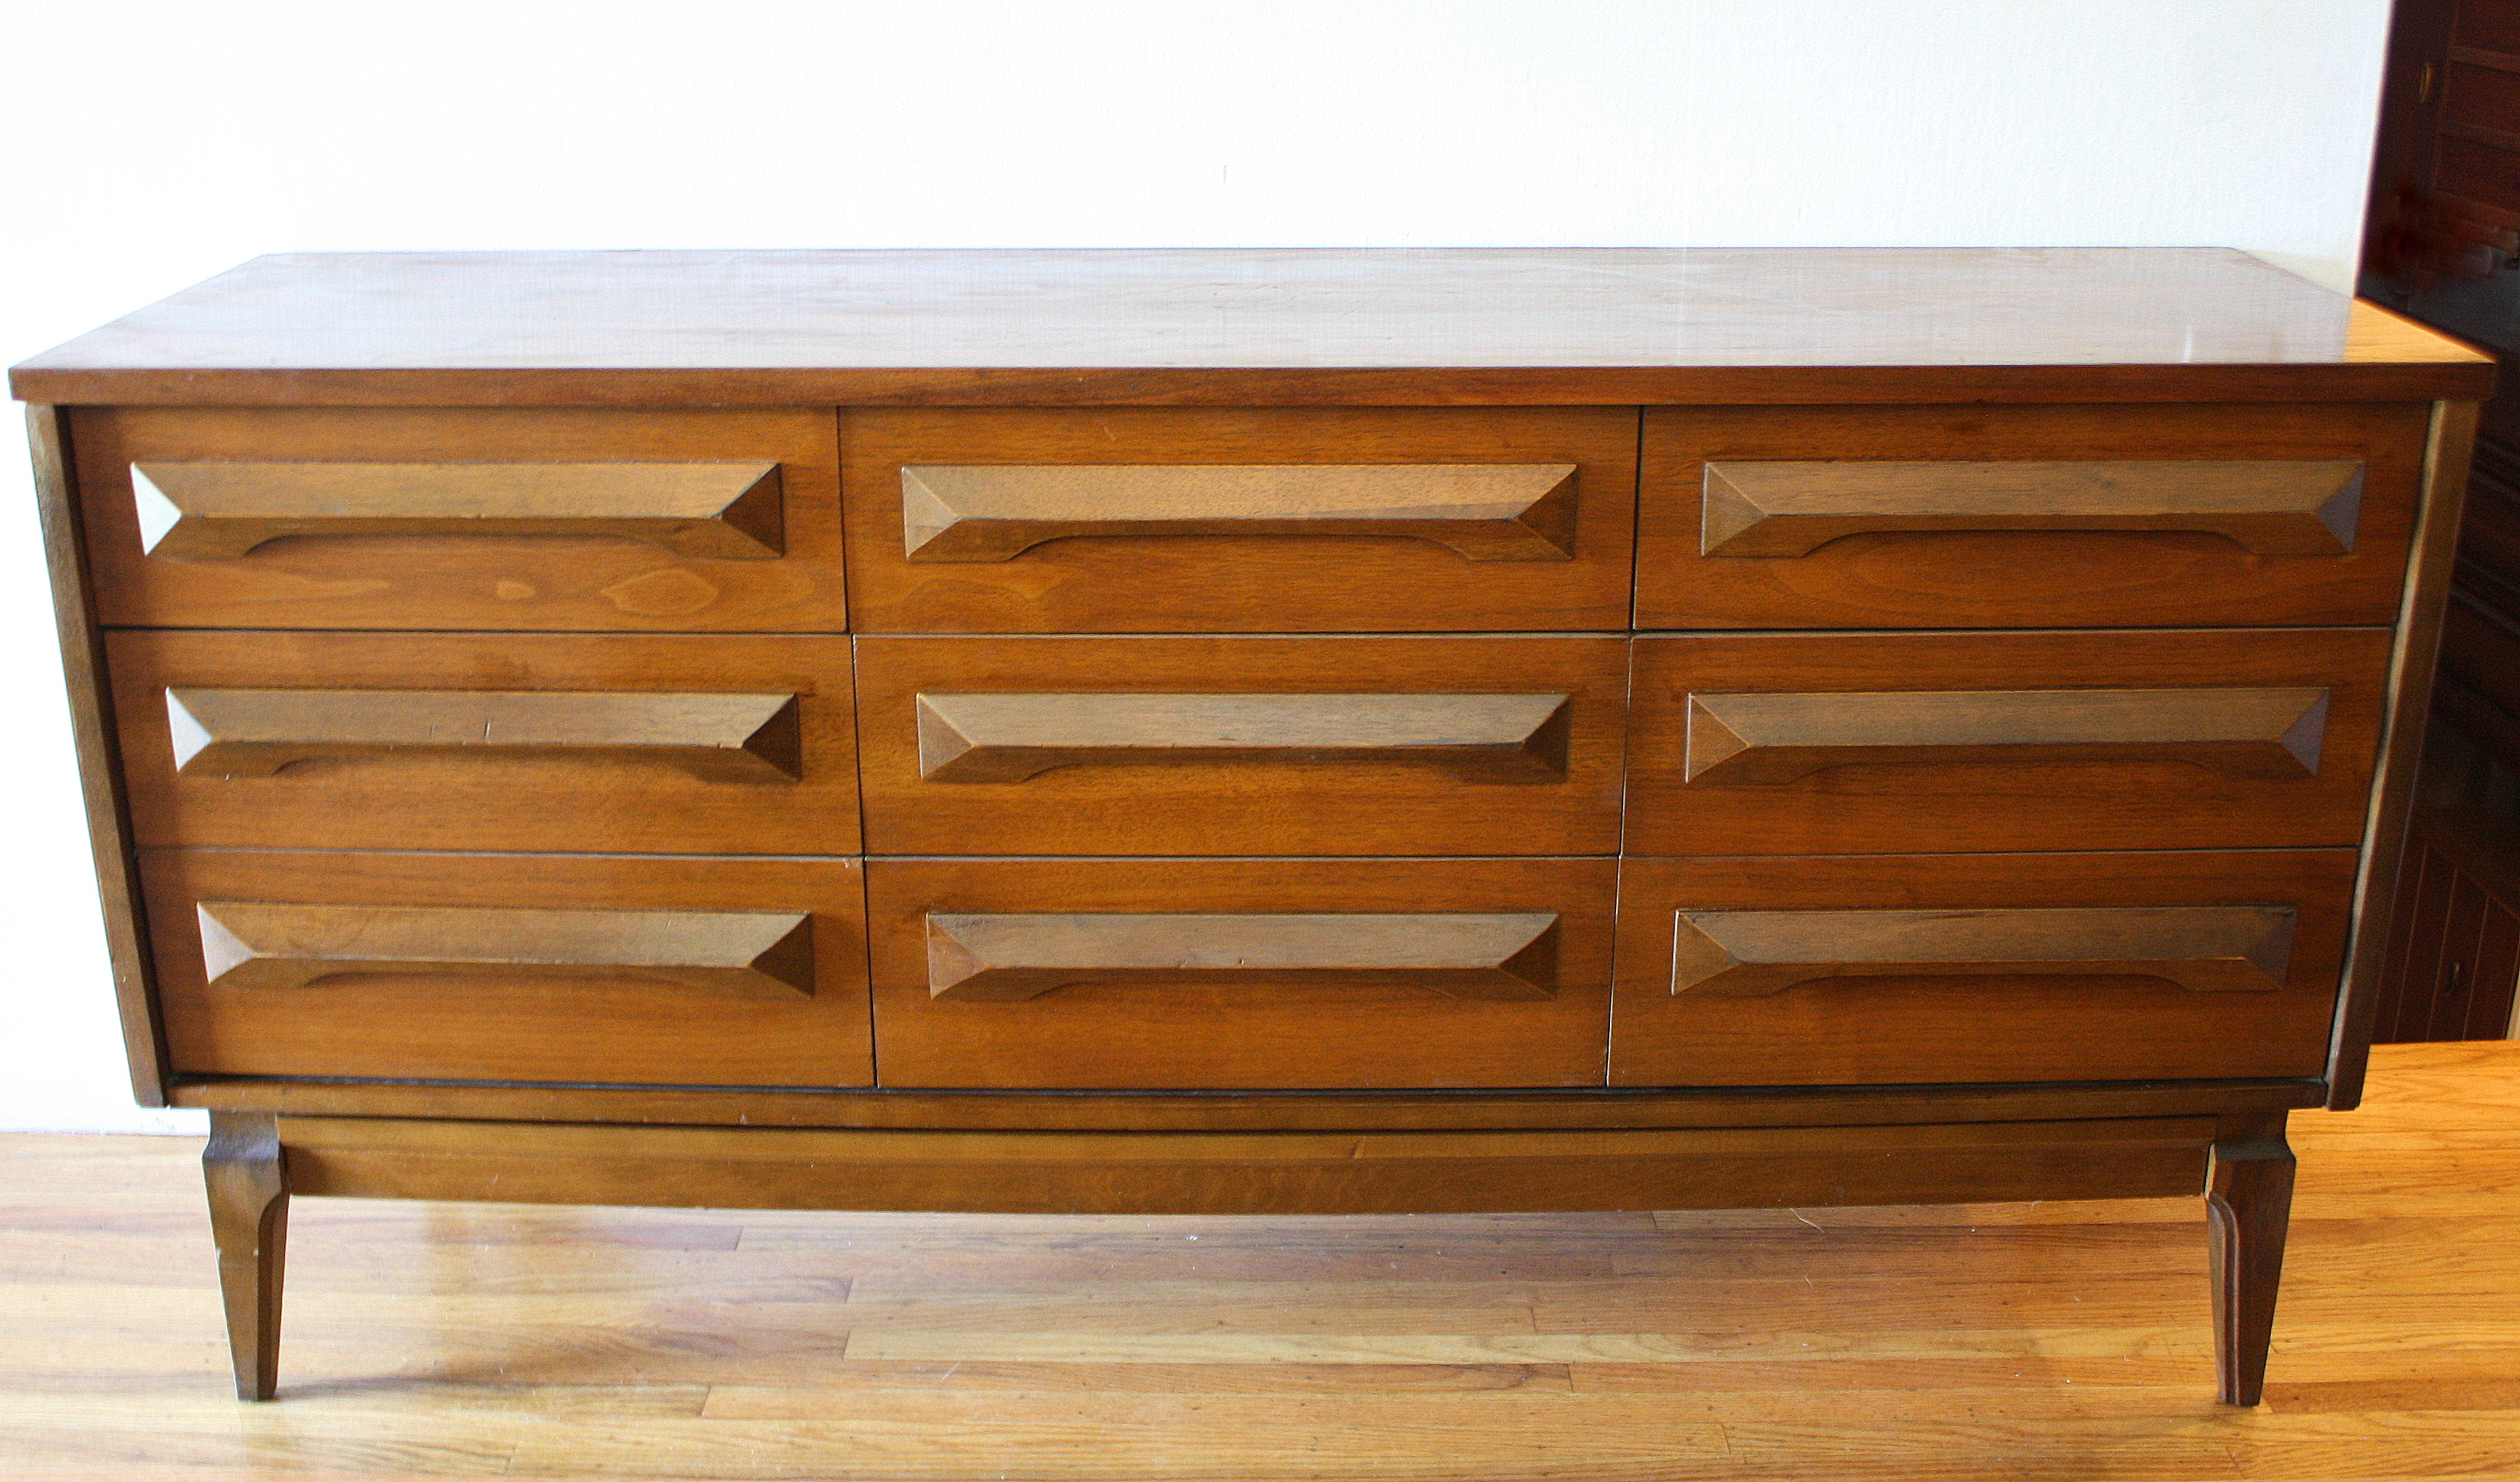 Mid Century Modern Low Dresser Credenzas | Picked Vintage on mid century modern 9 drawer dresser, jesper credenza office storage wood, mid century wood furniture,